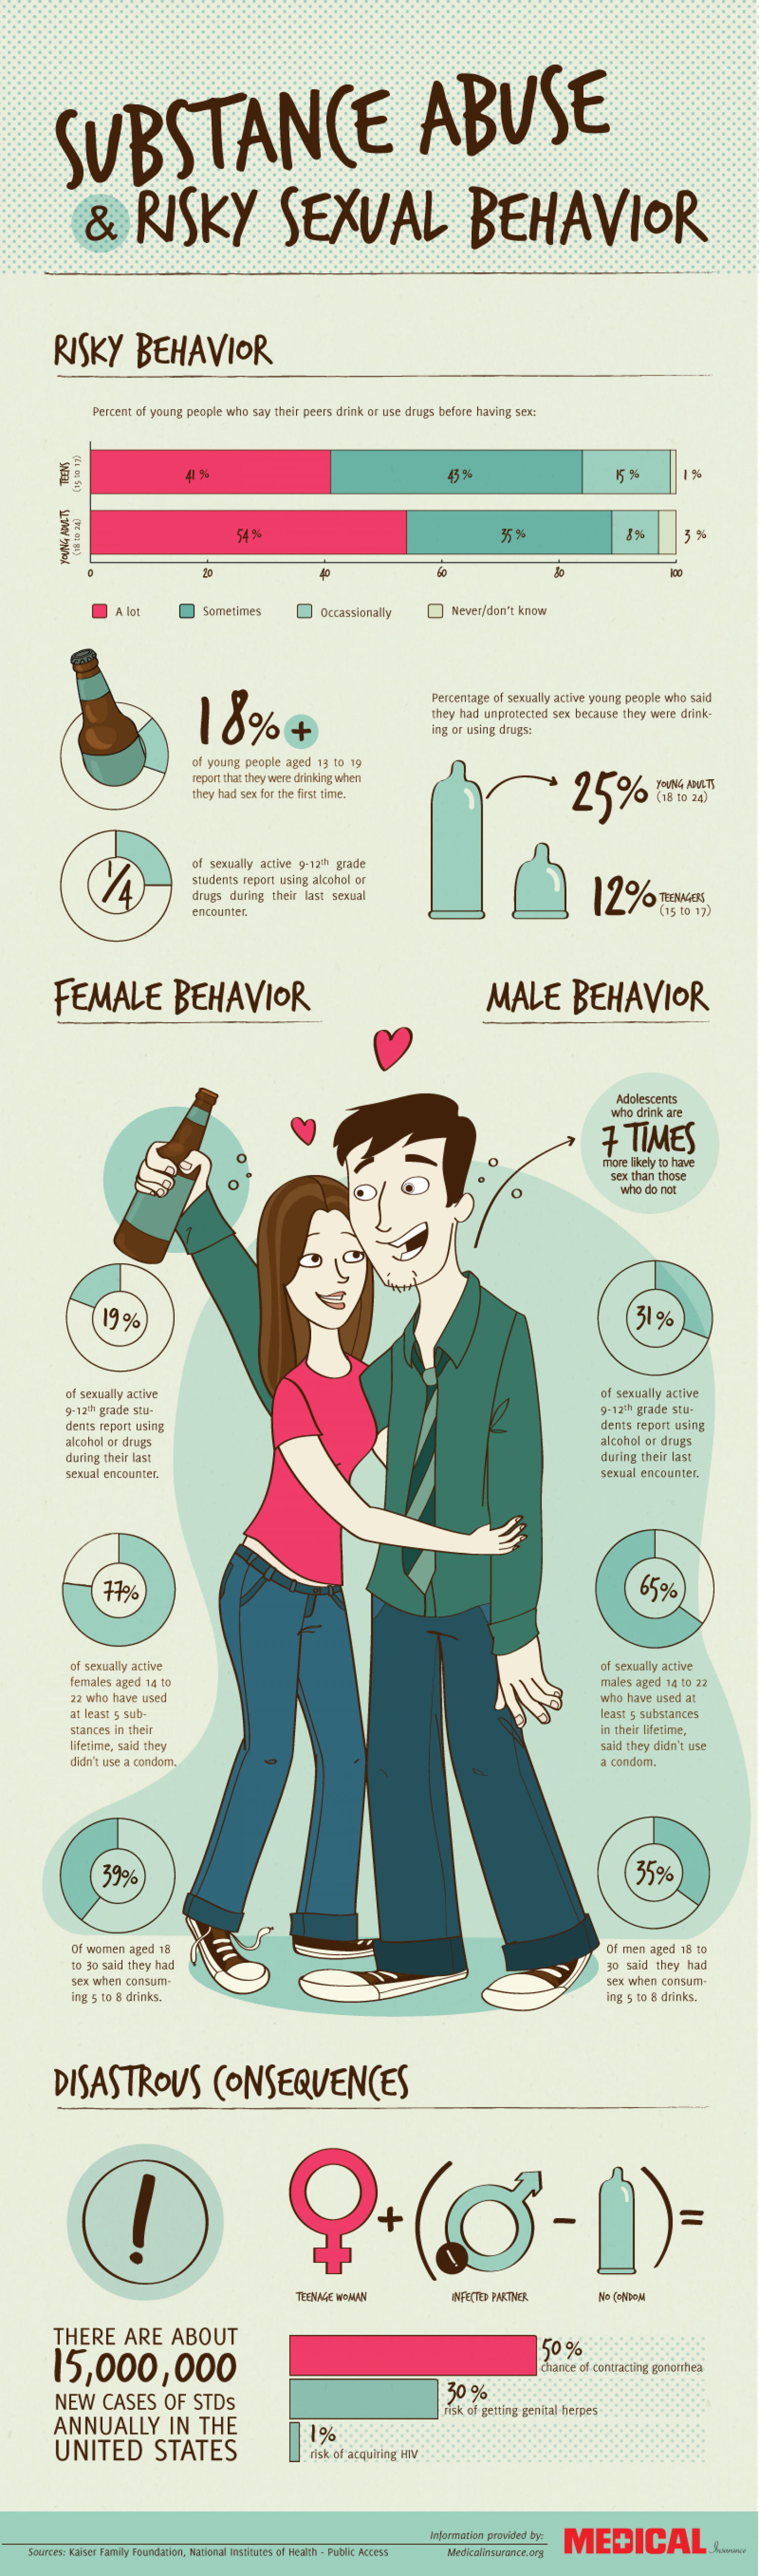 Substance Abuse and Risky Sexual Behavior Infographic